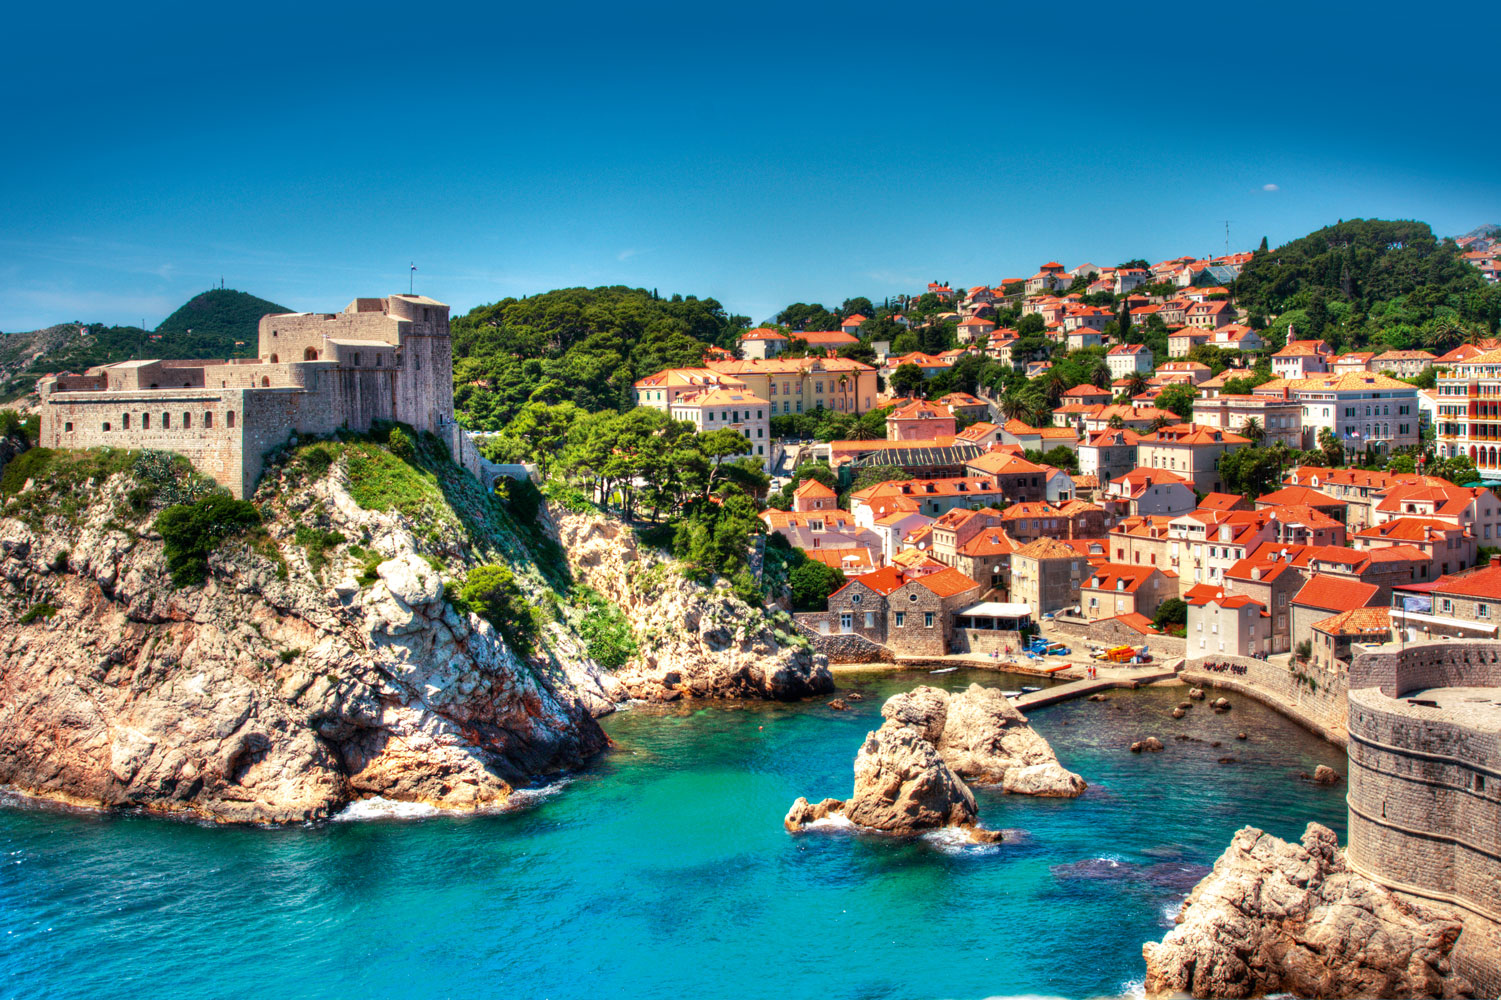 Dubrovnik croatia tourist destinations Best places to visit for christmas in usa